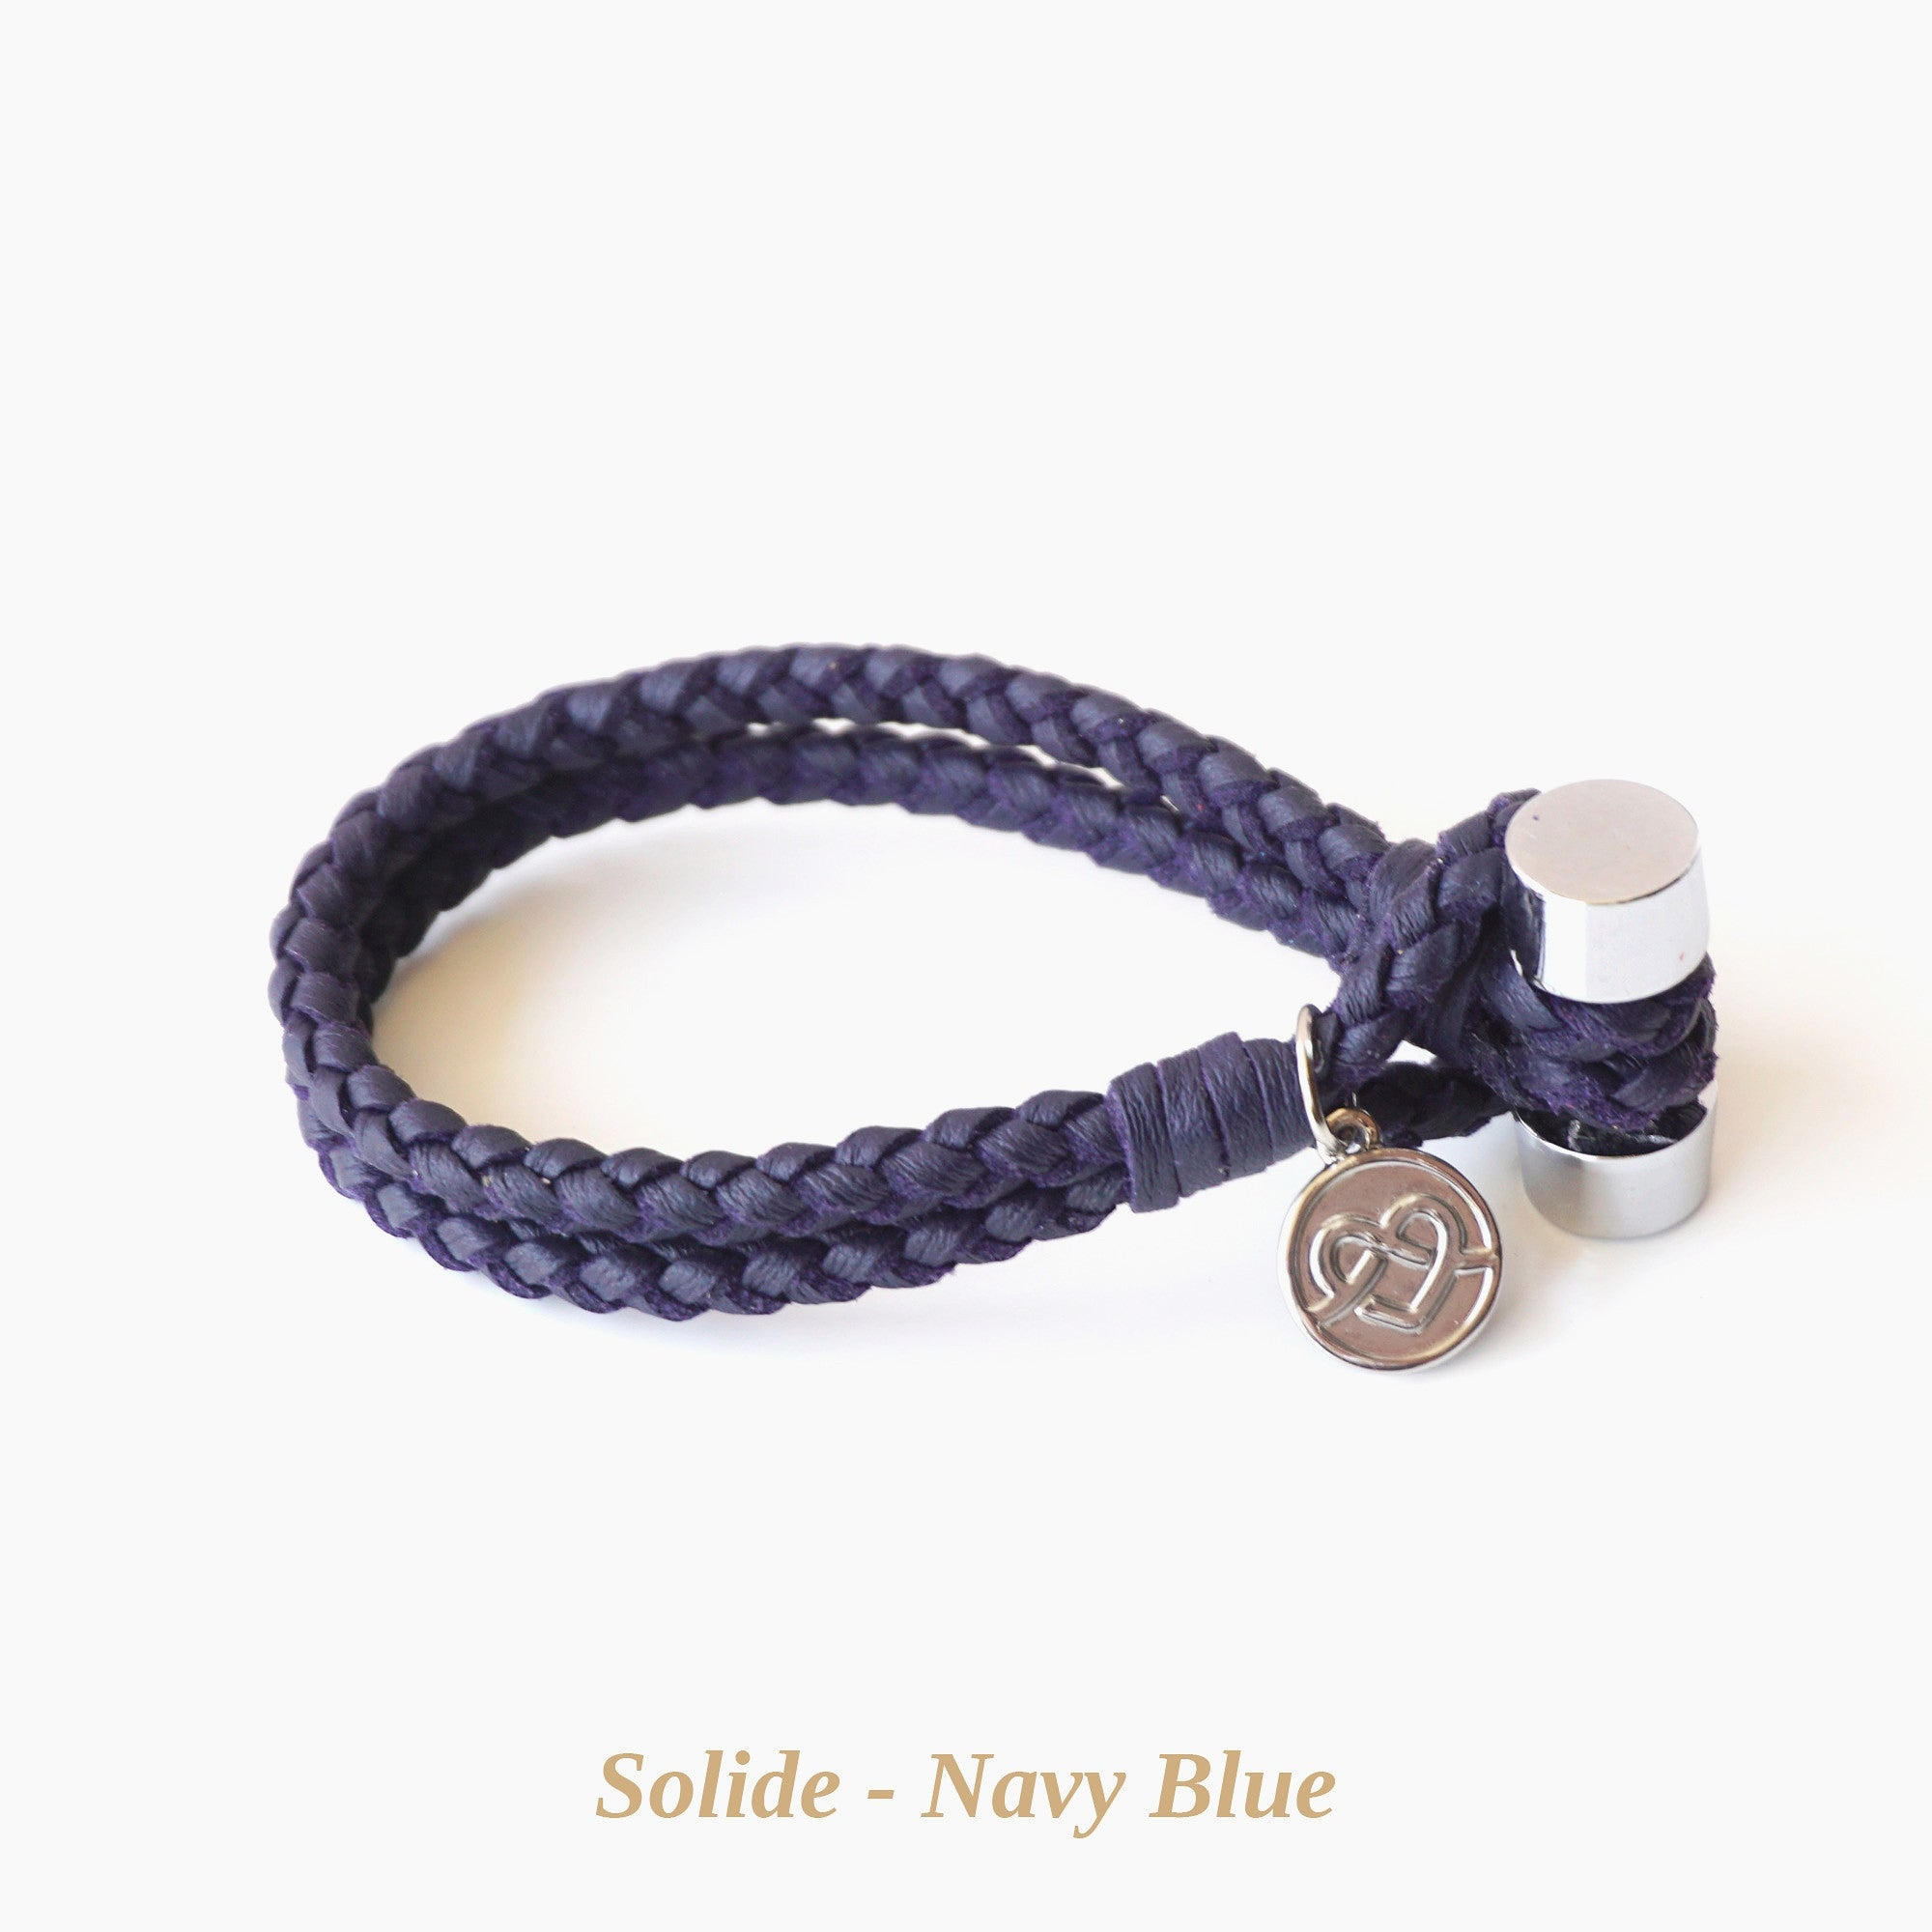 Navy Blue Solide Bracelet